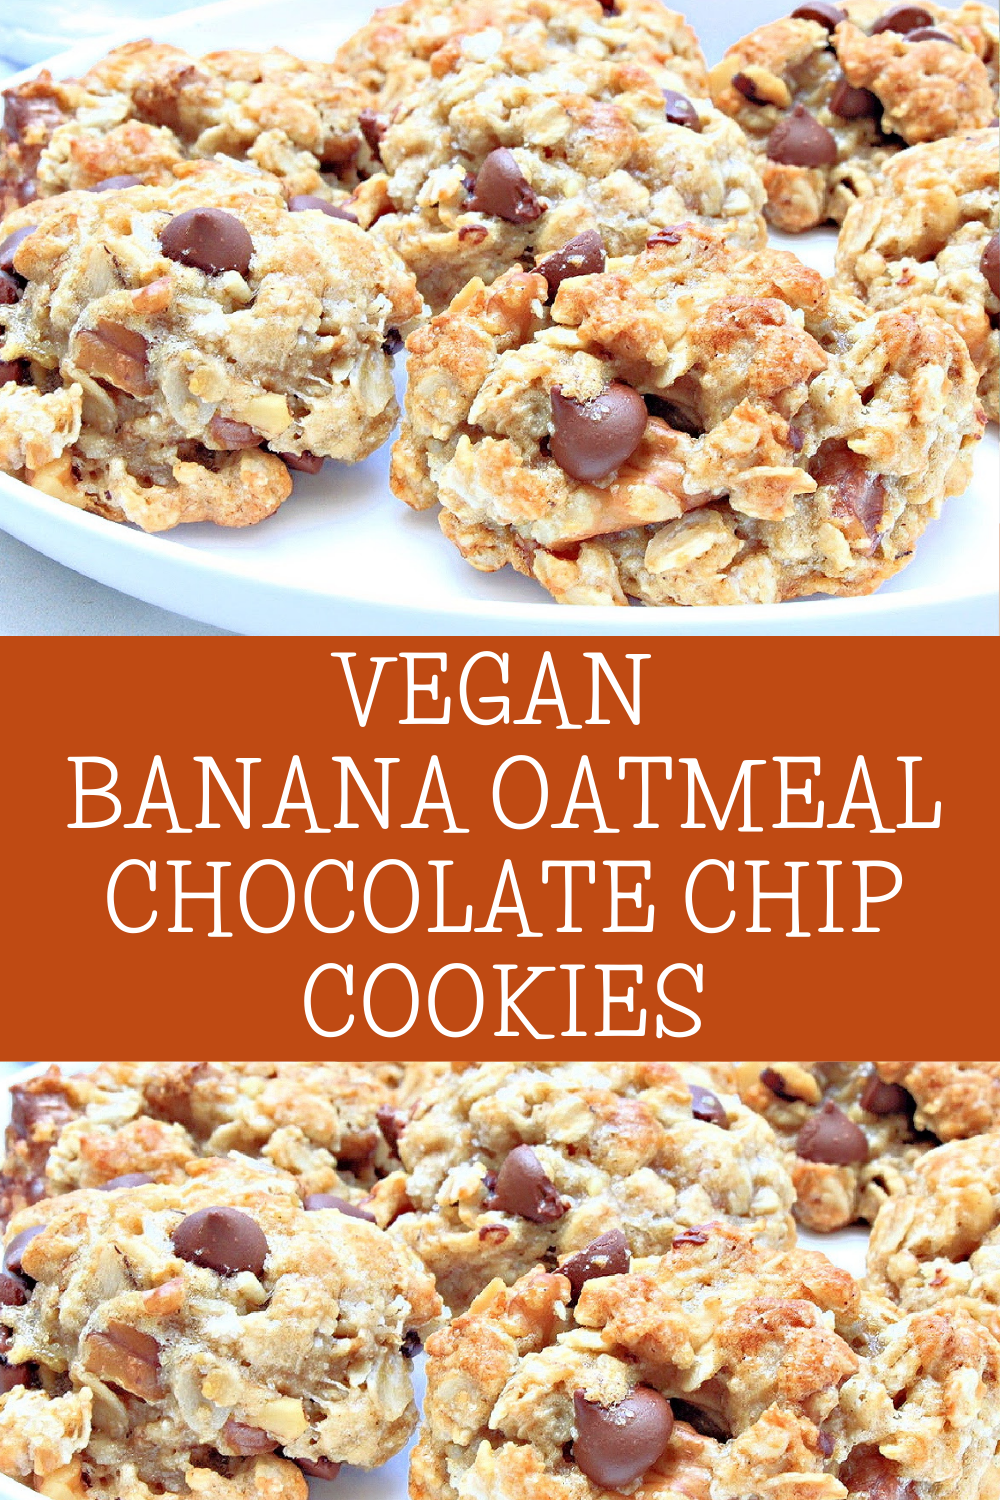 Vegan Banana Oatmeal Walnut Chocolate Chip Cookies ~ These chewy, easy-to-make, dairy-free cookies are perfect for packing in lunches or as an after-school snack! via @thiswifecooks